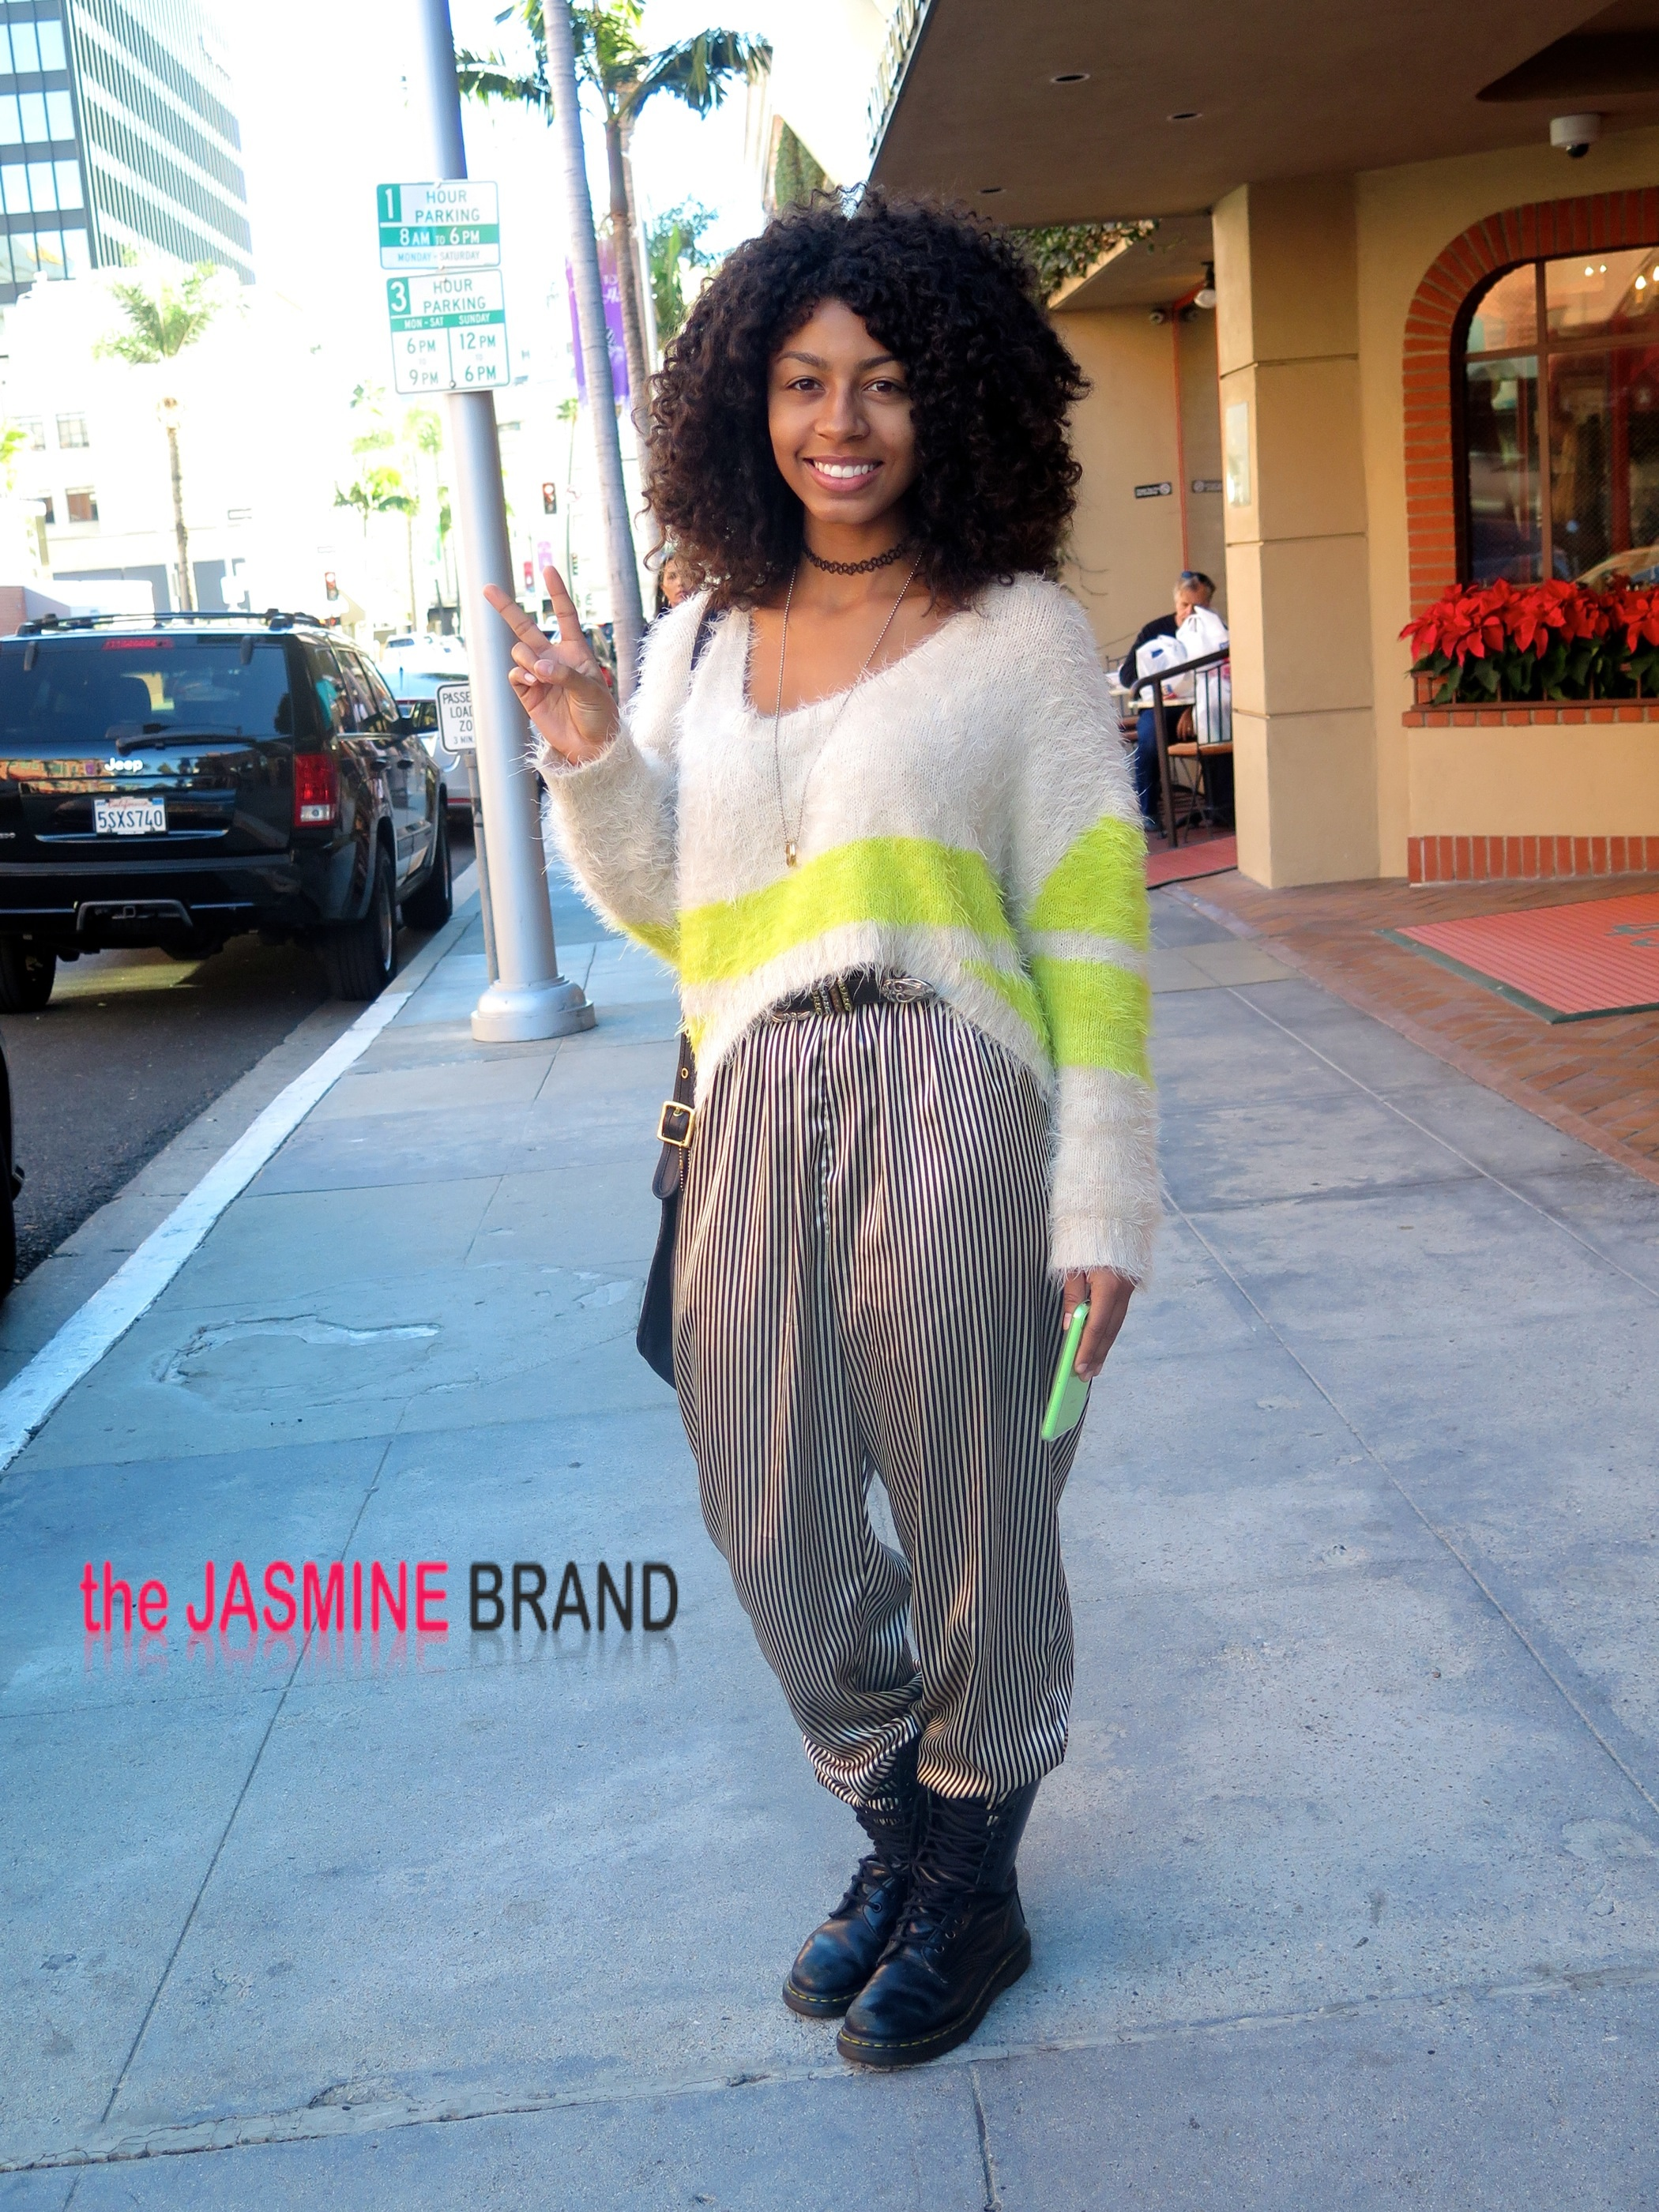 Recording artist Eric Benet's daugher, India Benet, was spotted running errands on Bedford Drive in Beverly Hills